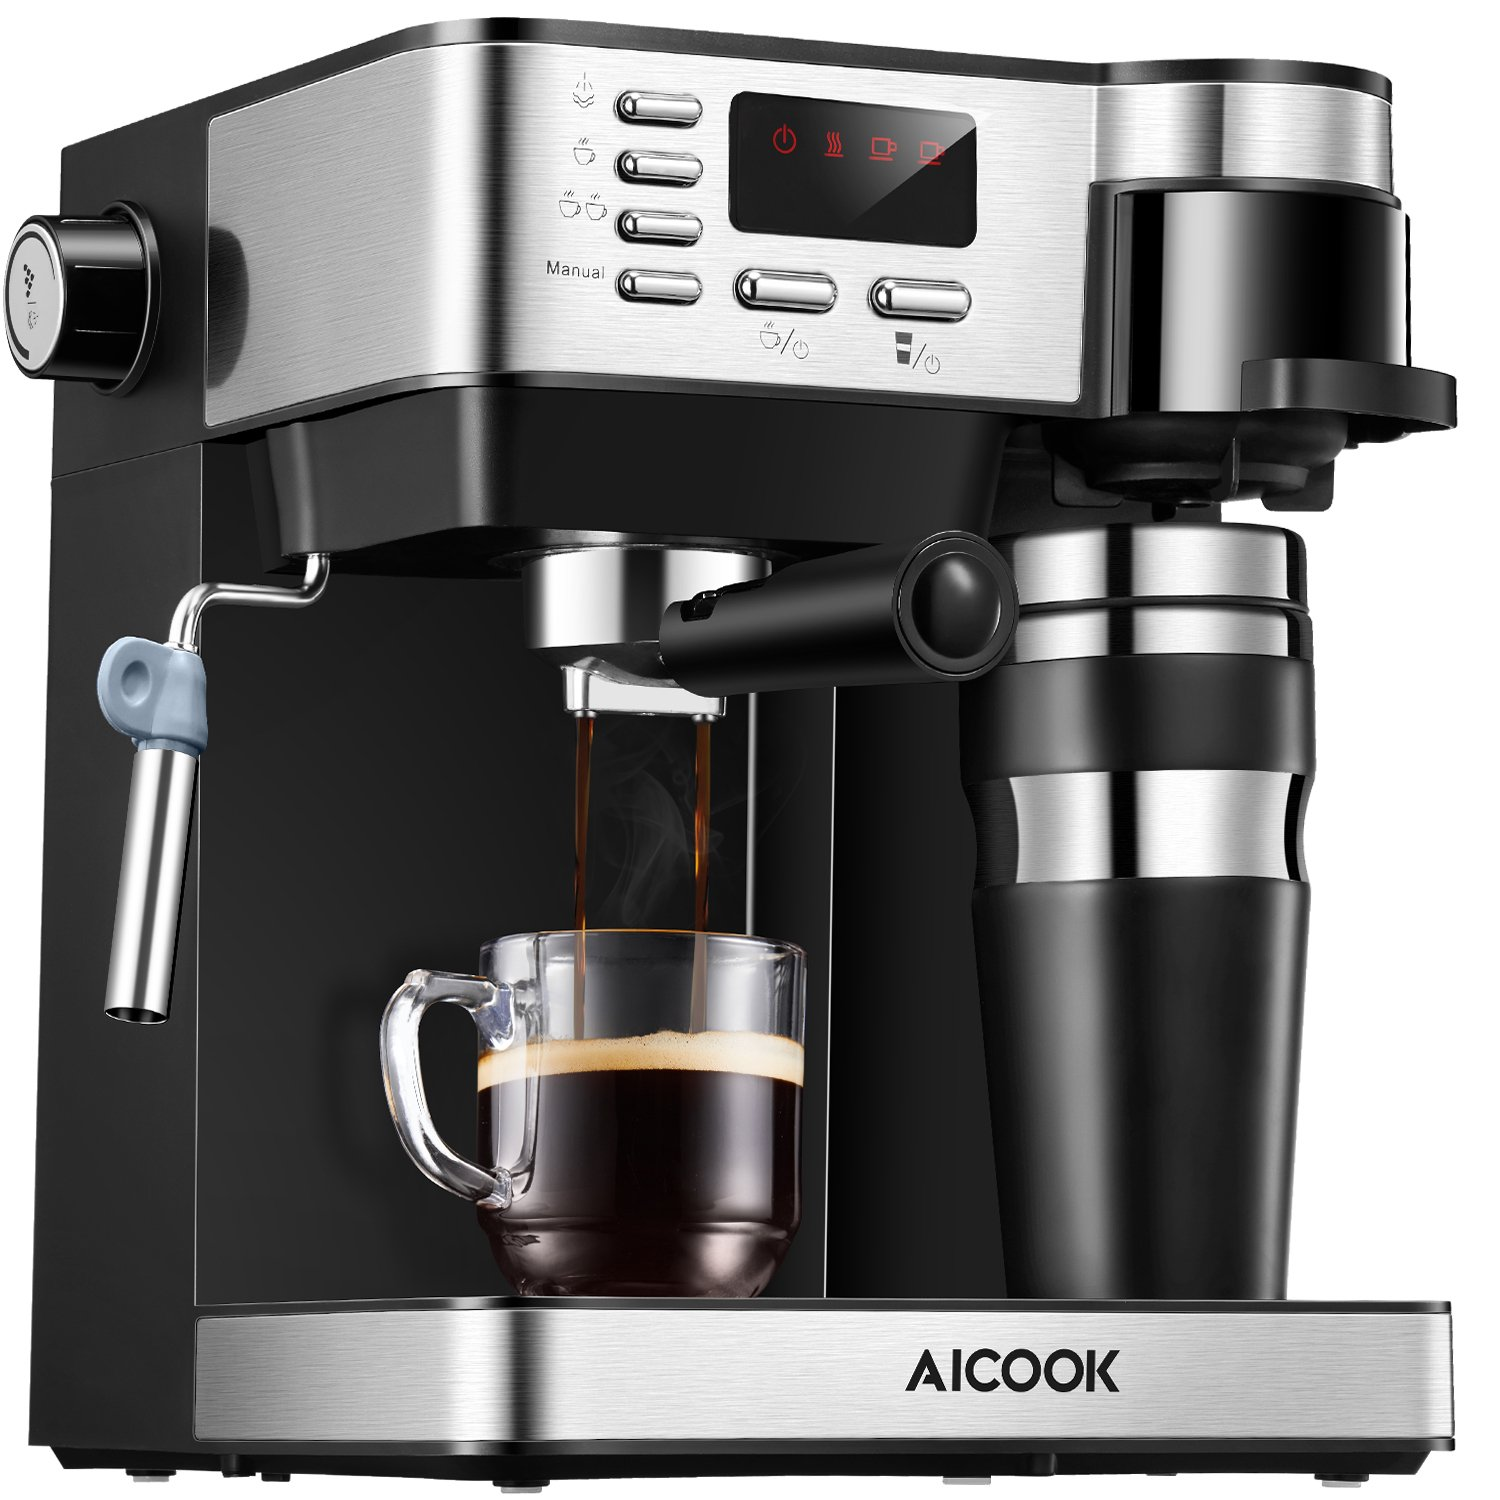 AICOOK Espresso and Coffee Machine, 3 in 1 Combination 15 Bar Espresso Machine and Single Serve Coffee Maker With Coffee Mug, Milk Frother for ...